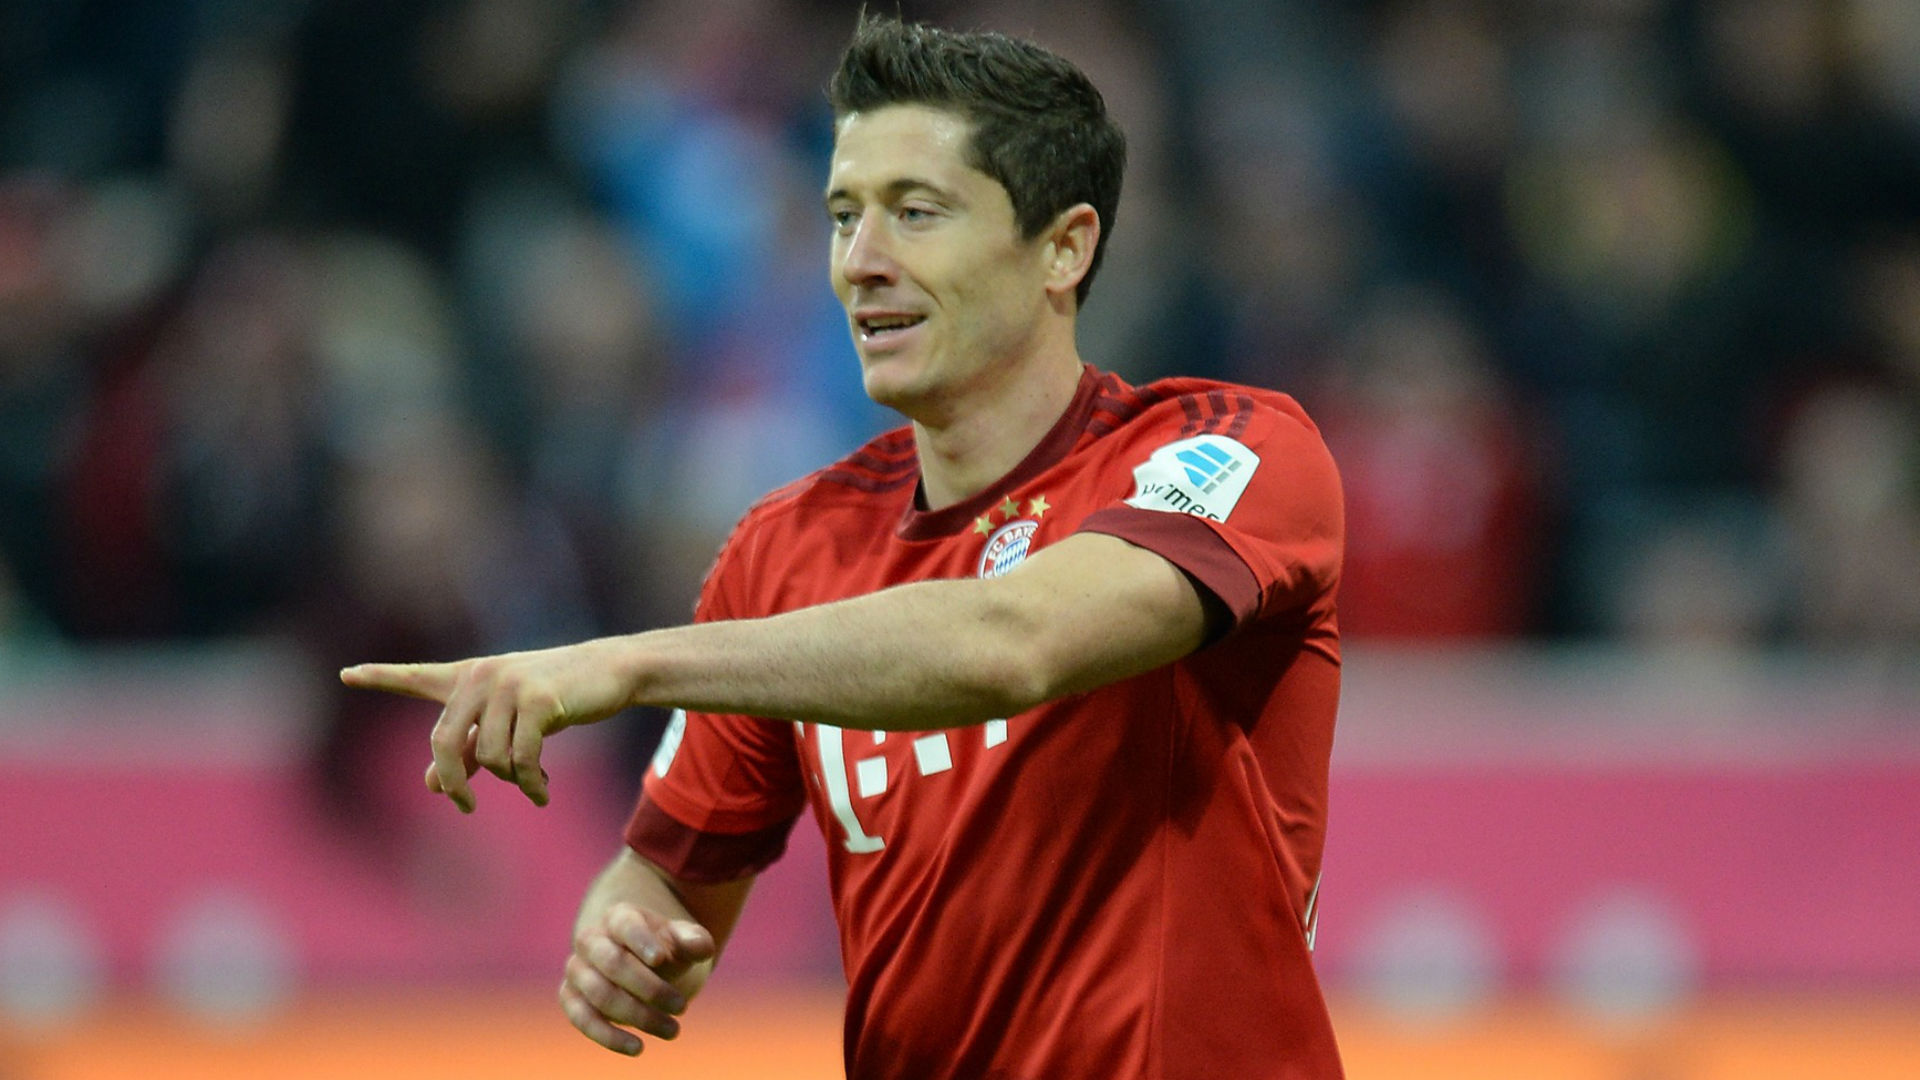 Arsenal vs. Bayern Munich odds and pick – Expect goals aplenty in London